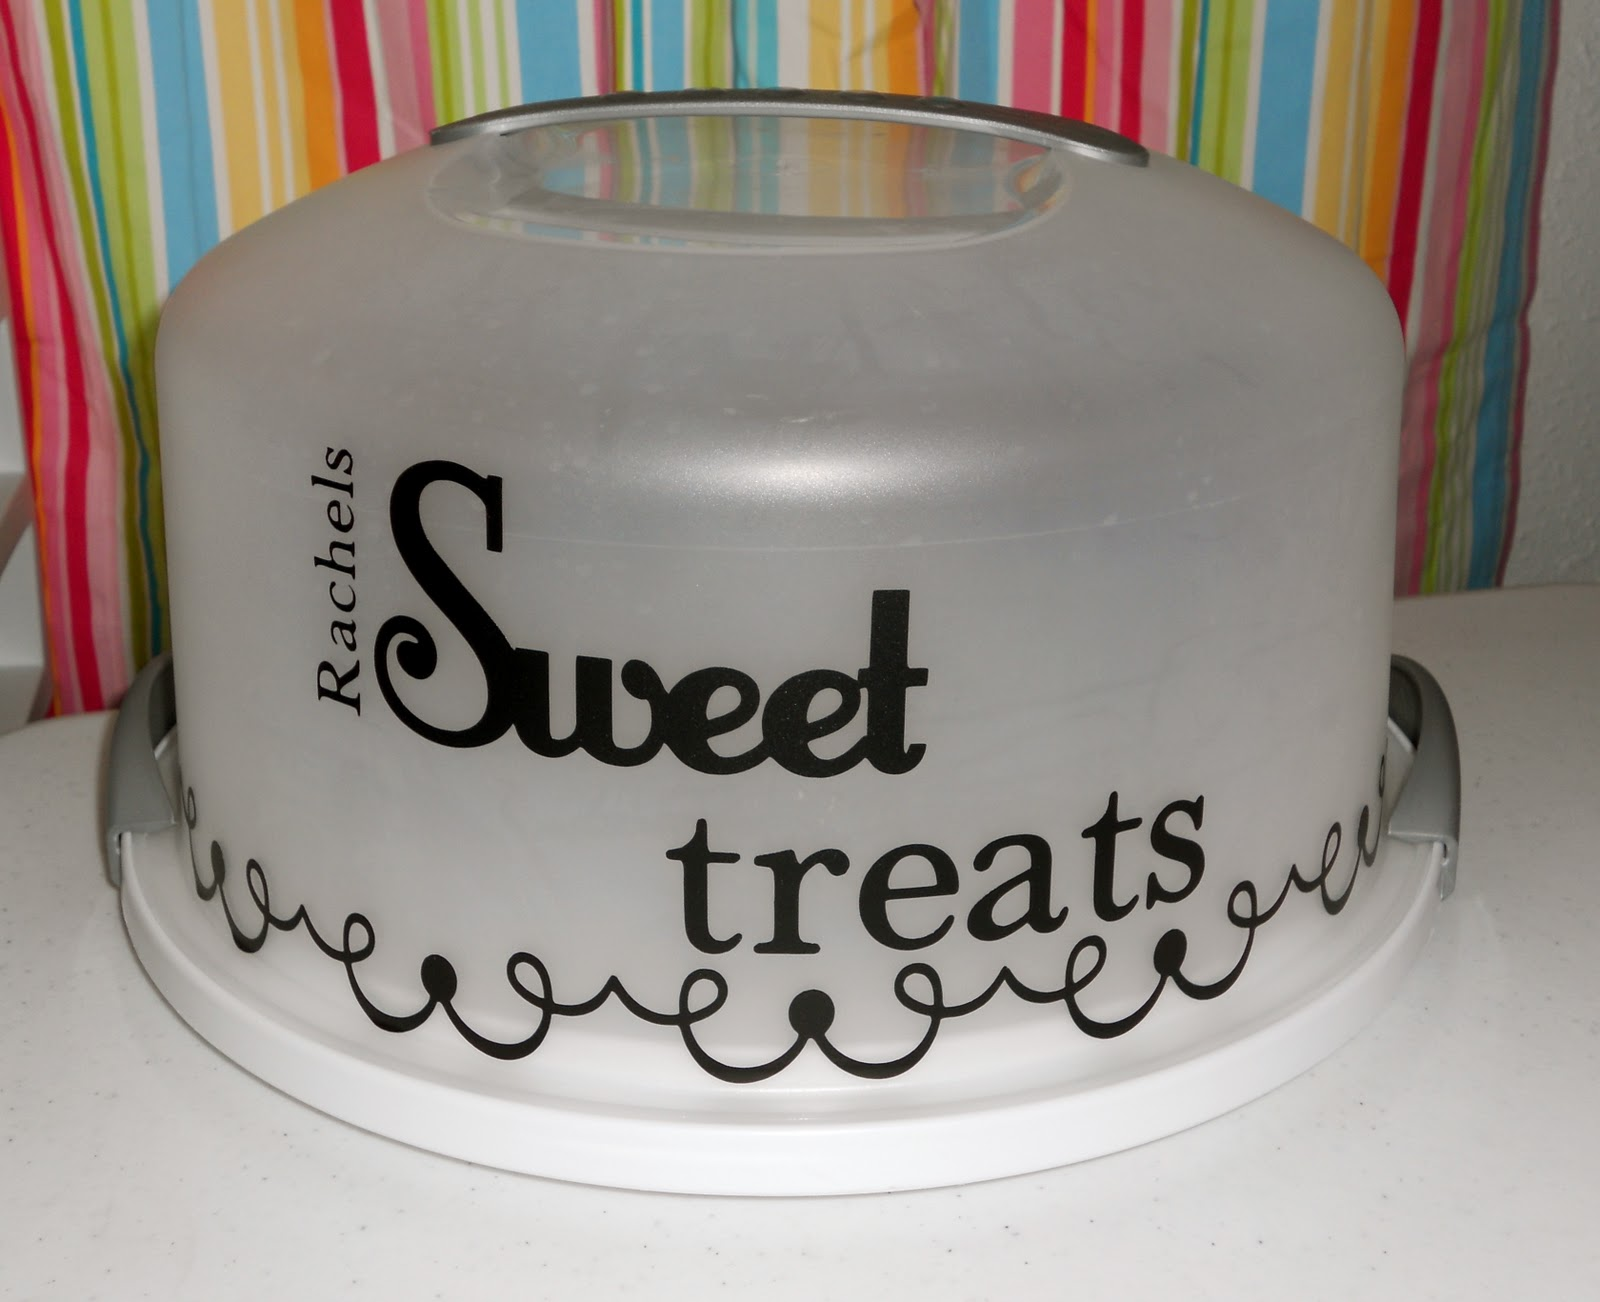 Cricut Expression For Cakes